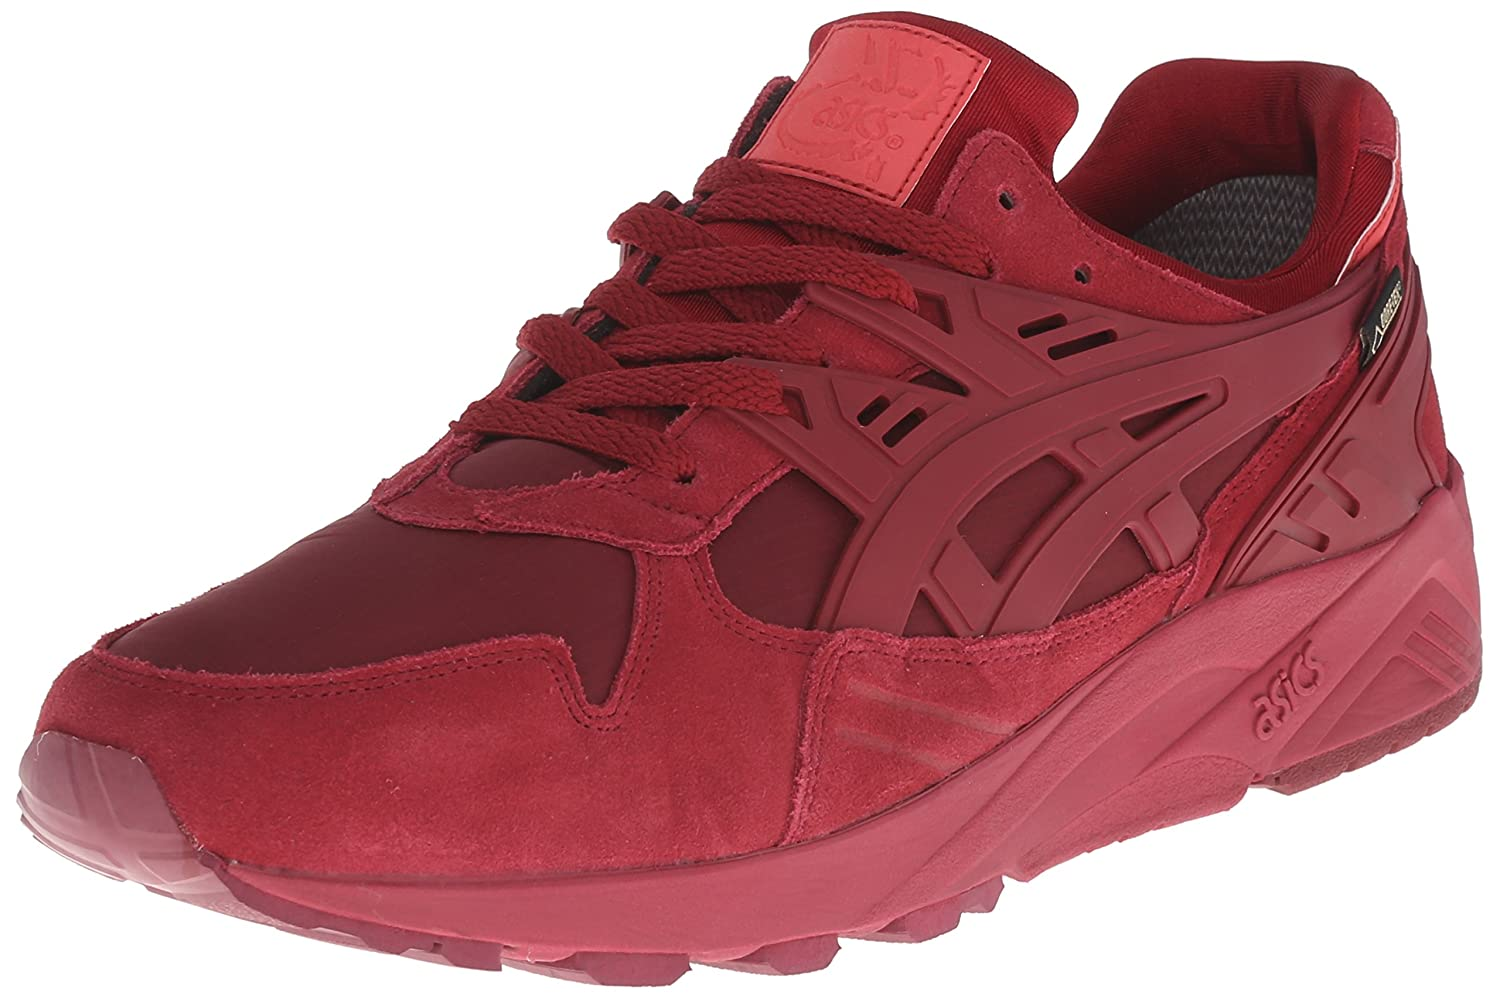 ASICS Gel Kayano Trainer Retro Running Shoe